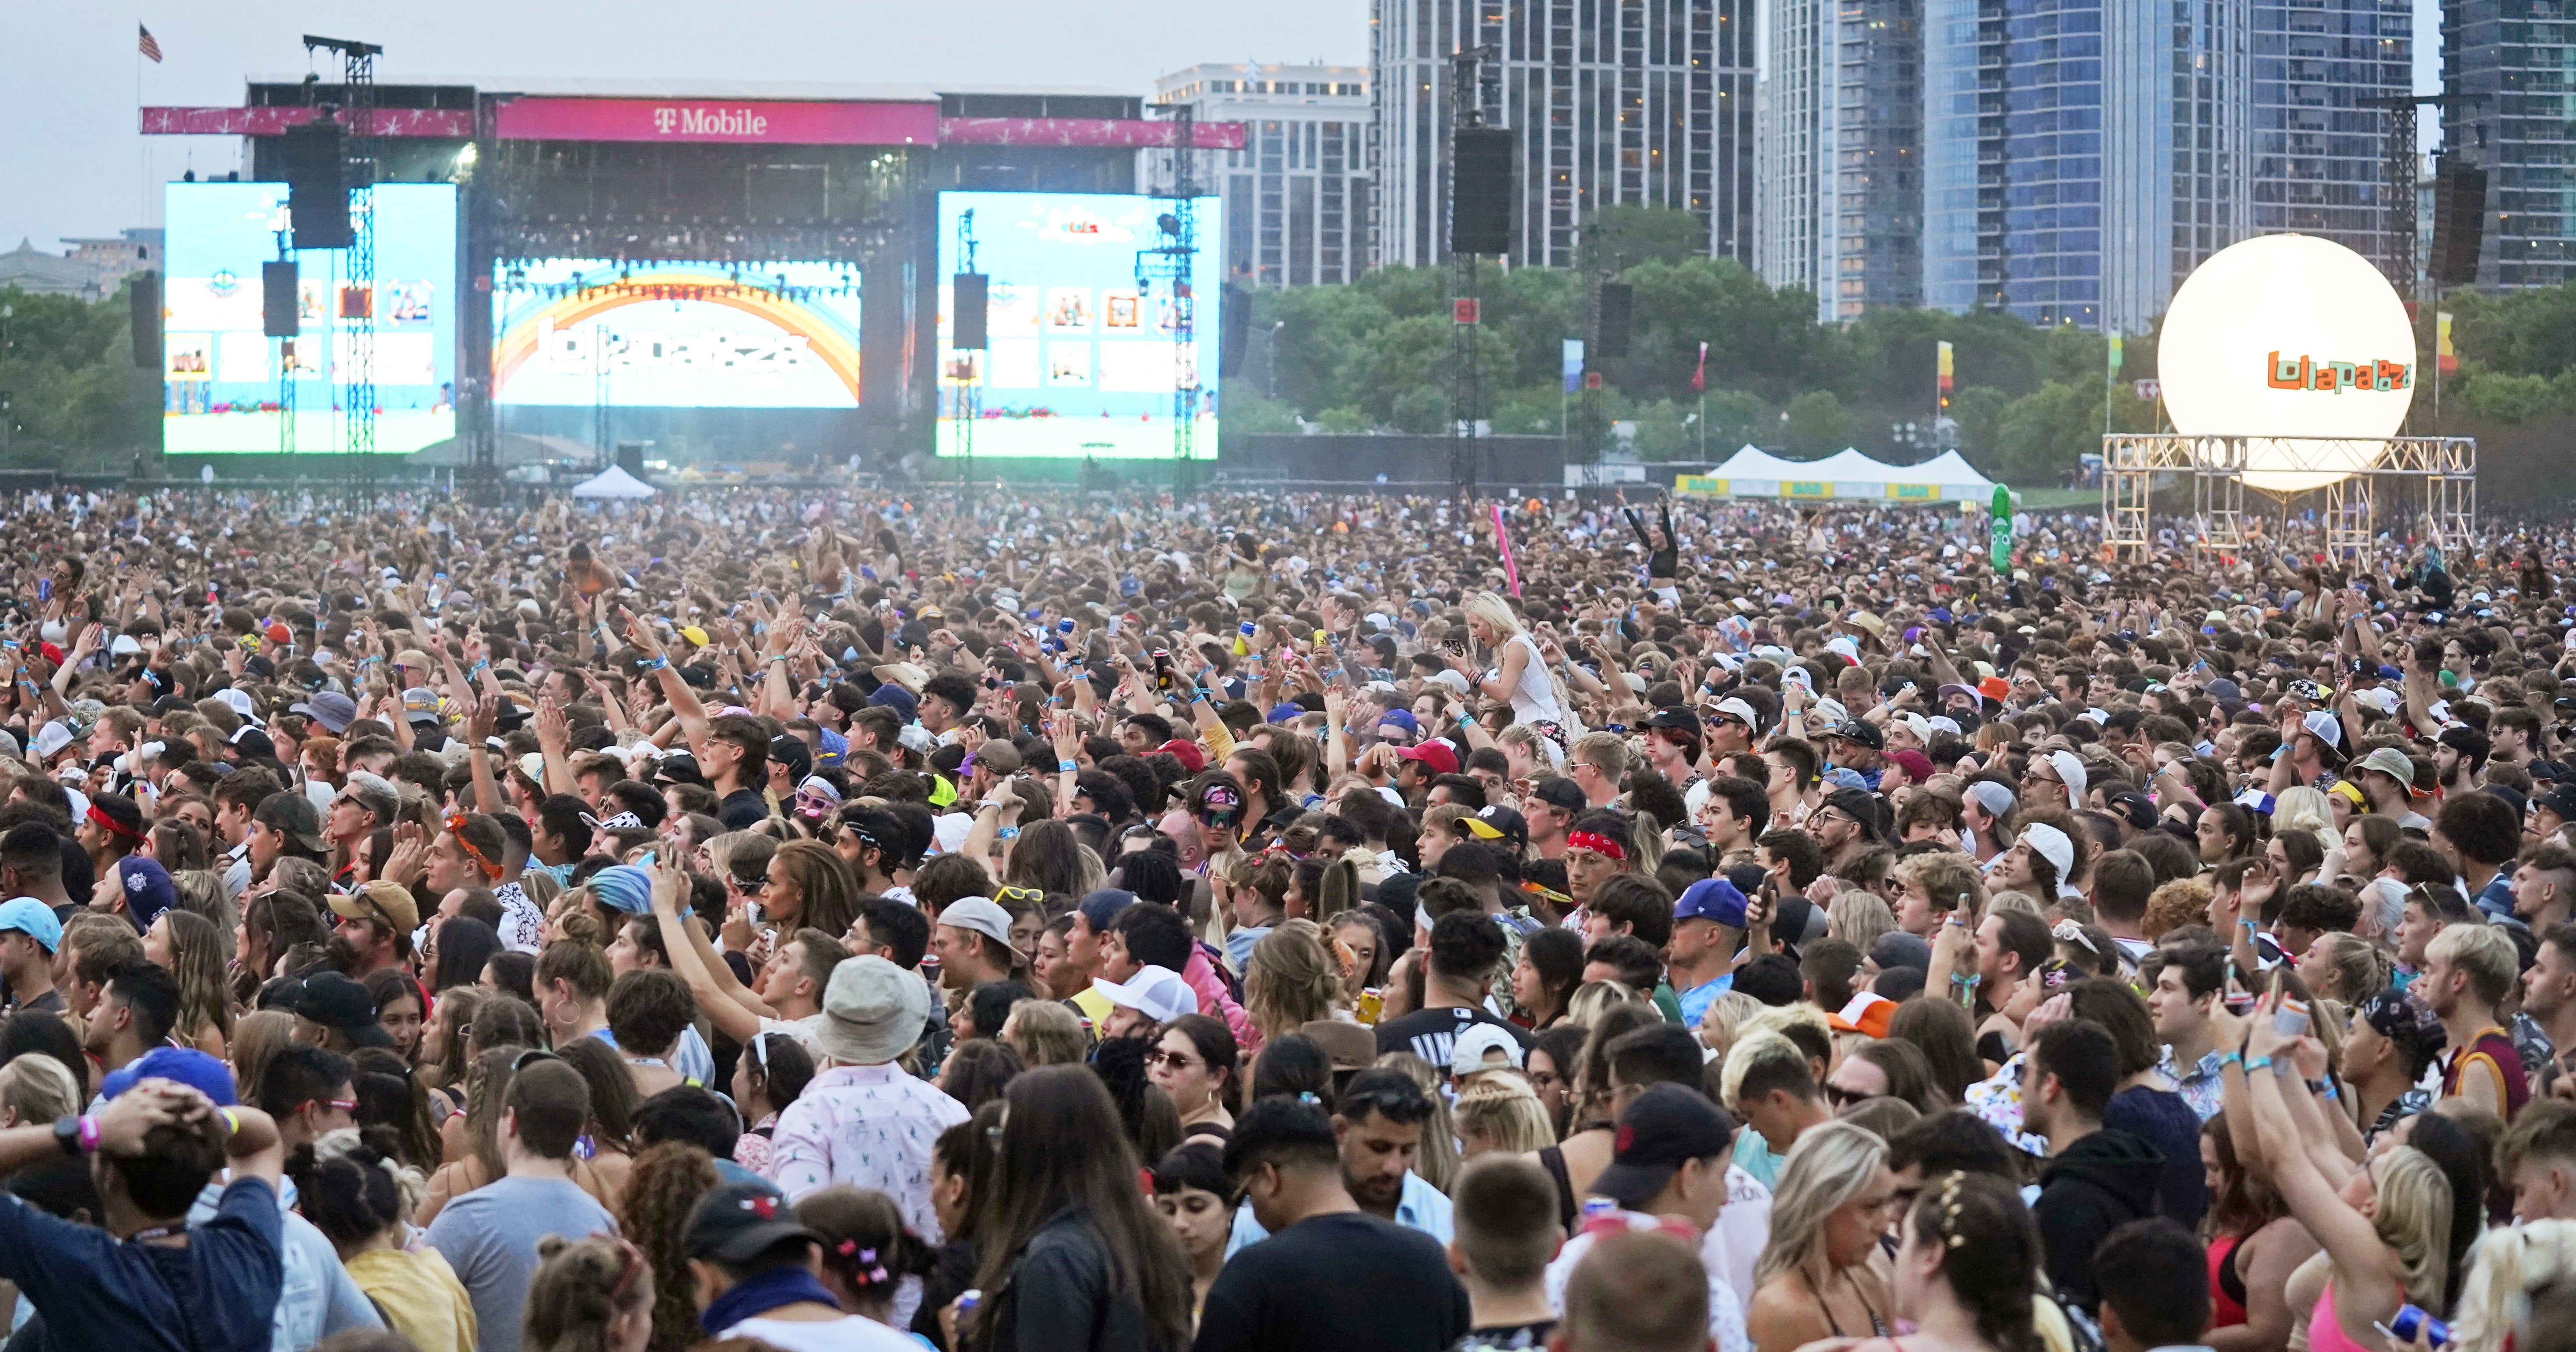 Even Without A Deadly Pandemic, Lollapalooza Did Not Look Fun